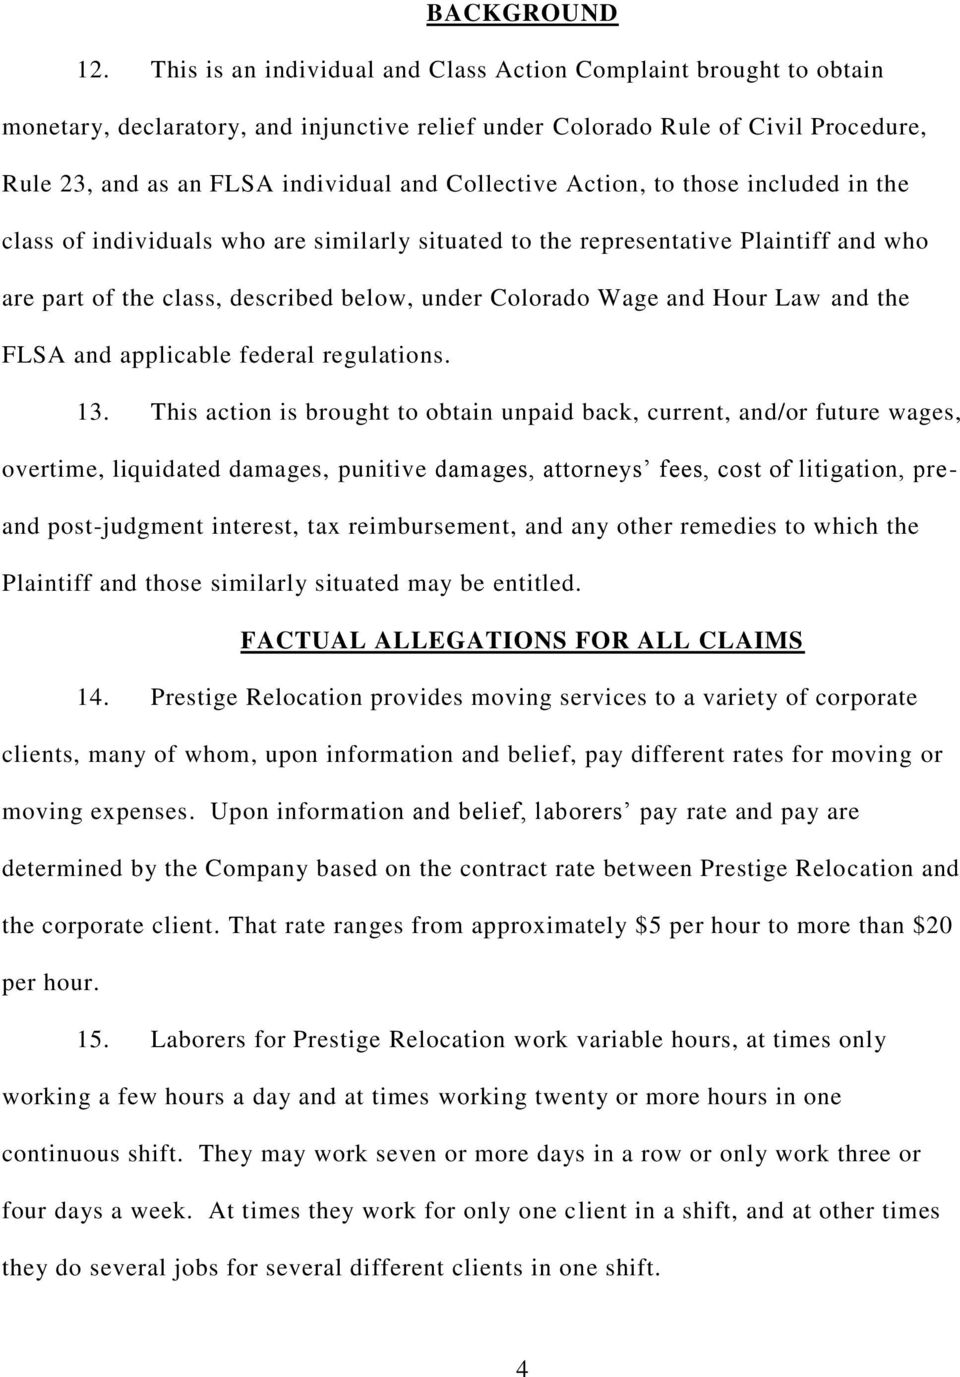 Collective Action, to those included in the class of individuals who are similarly situated to the representative Plaintiff and who are part of the class, described below, under Colorado Wage and